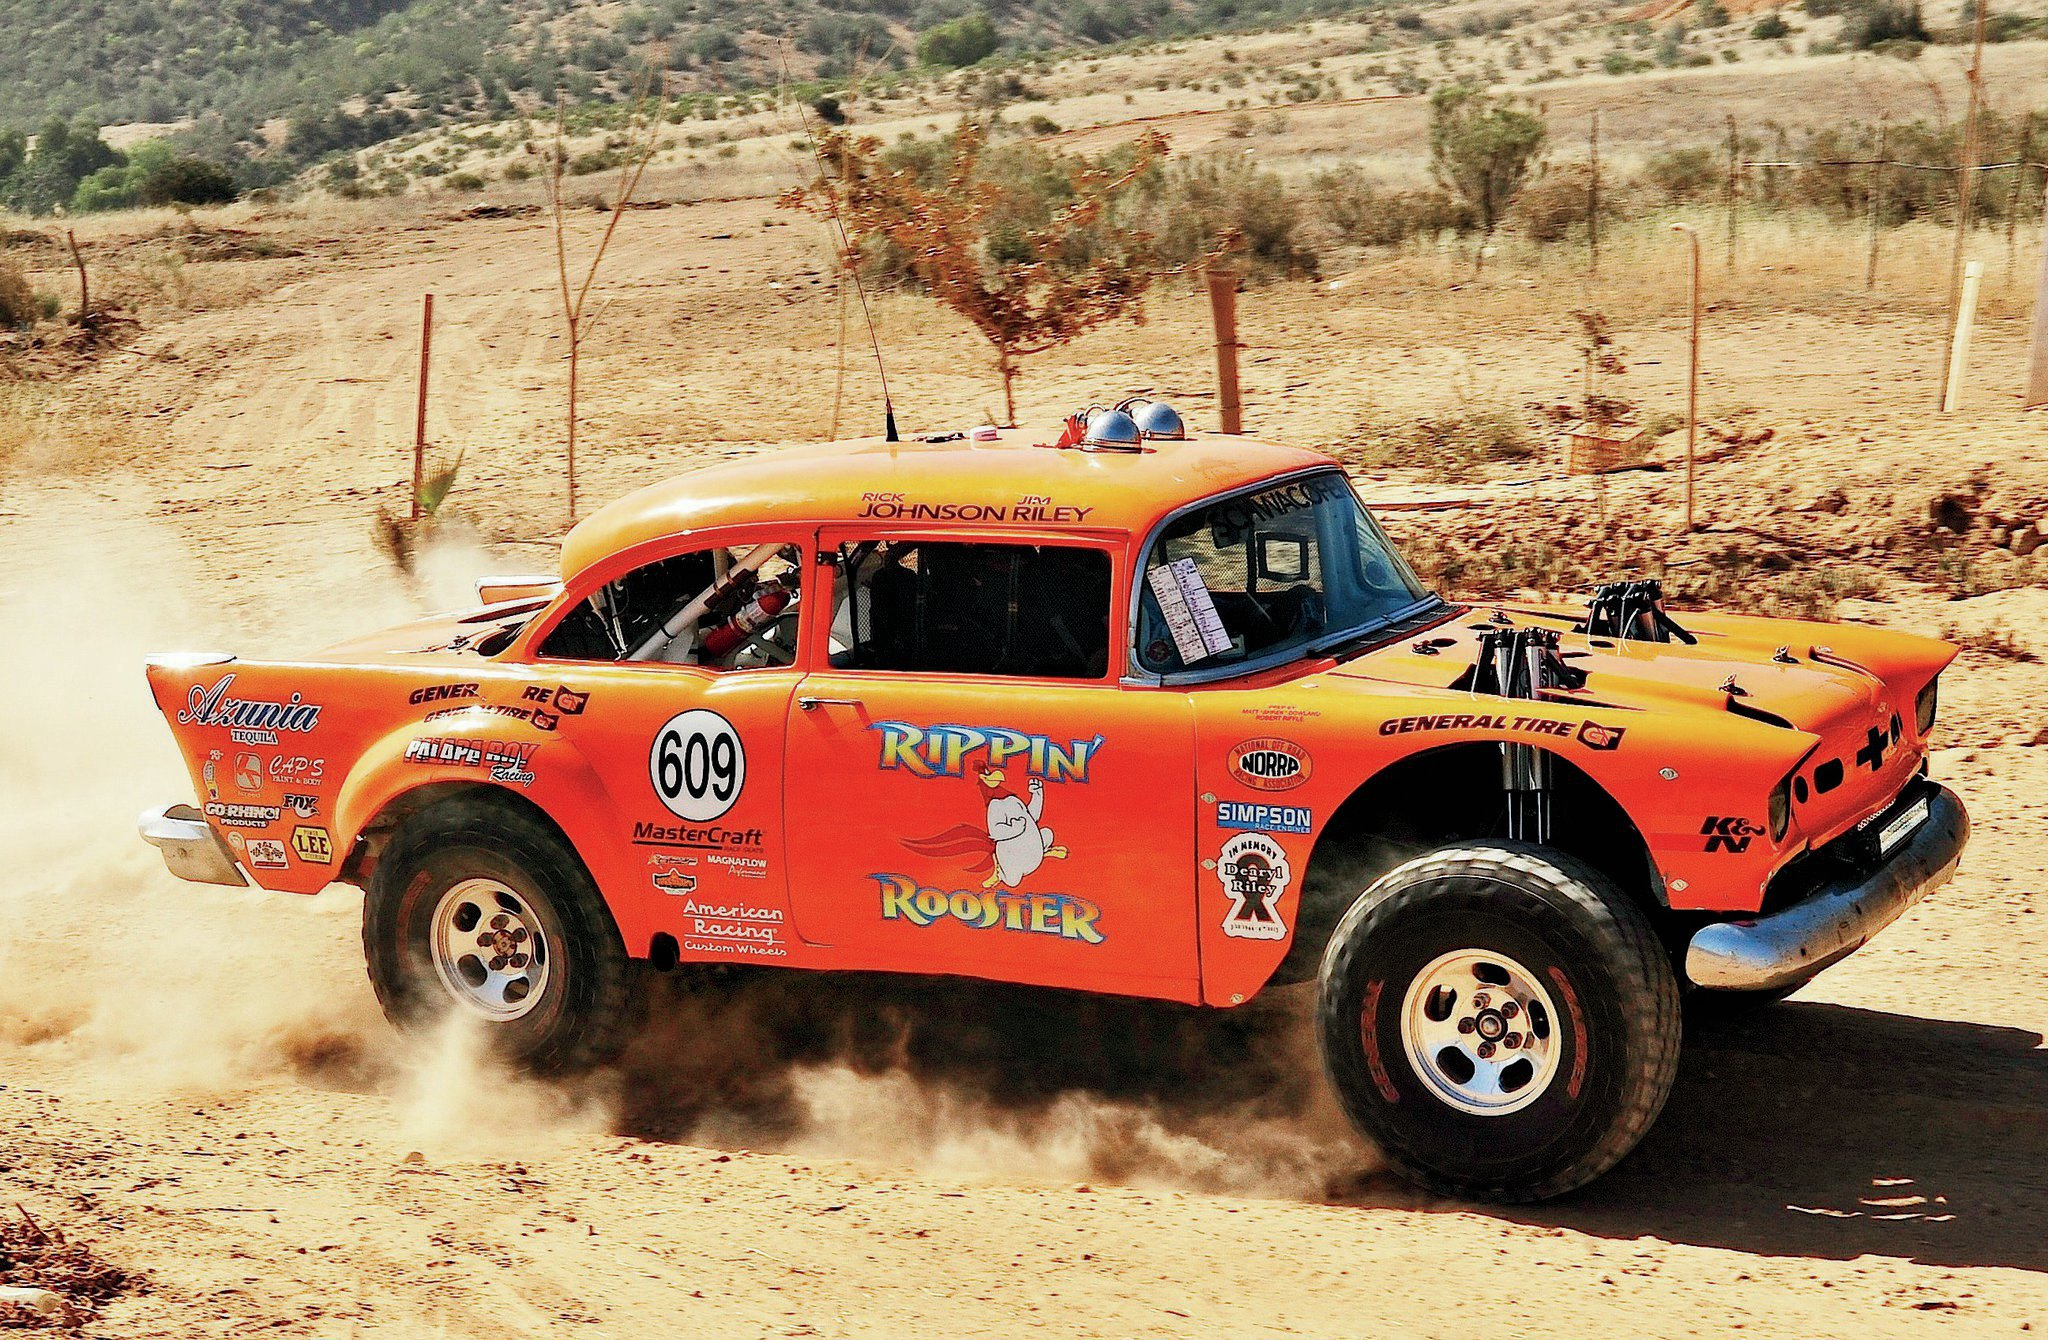 rippin rooster vintage off road race car